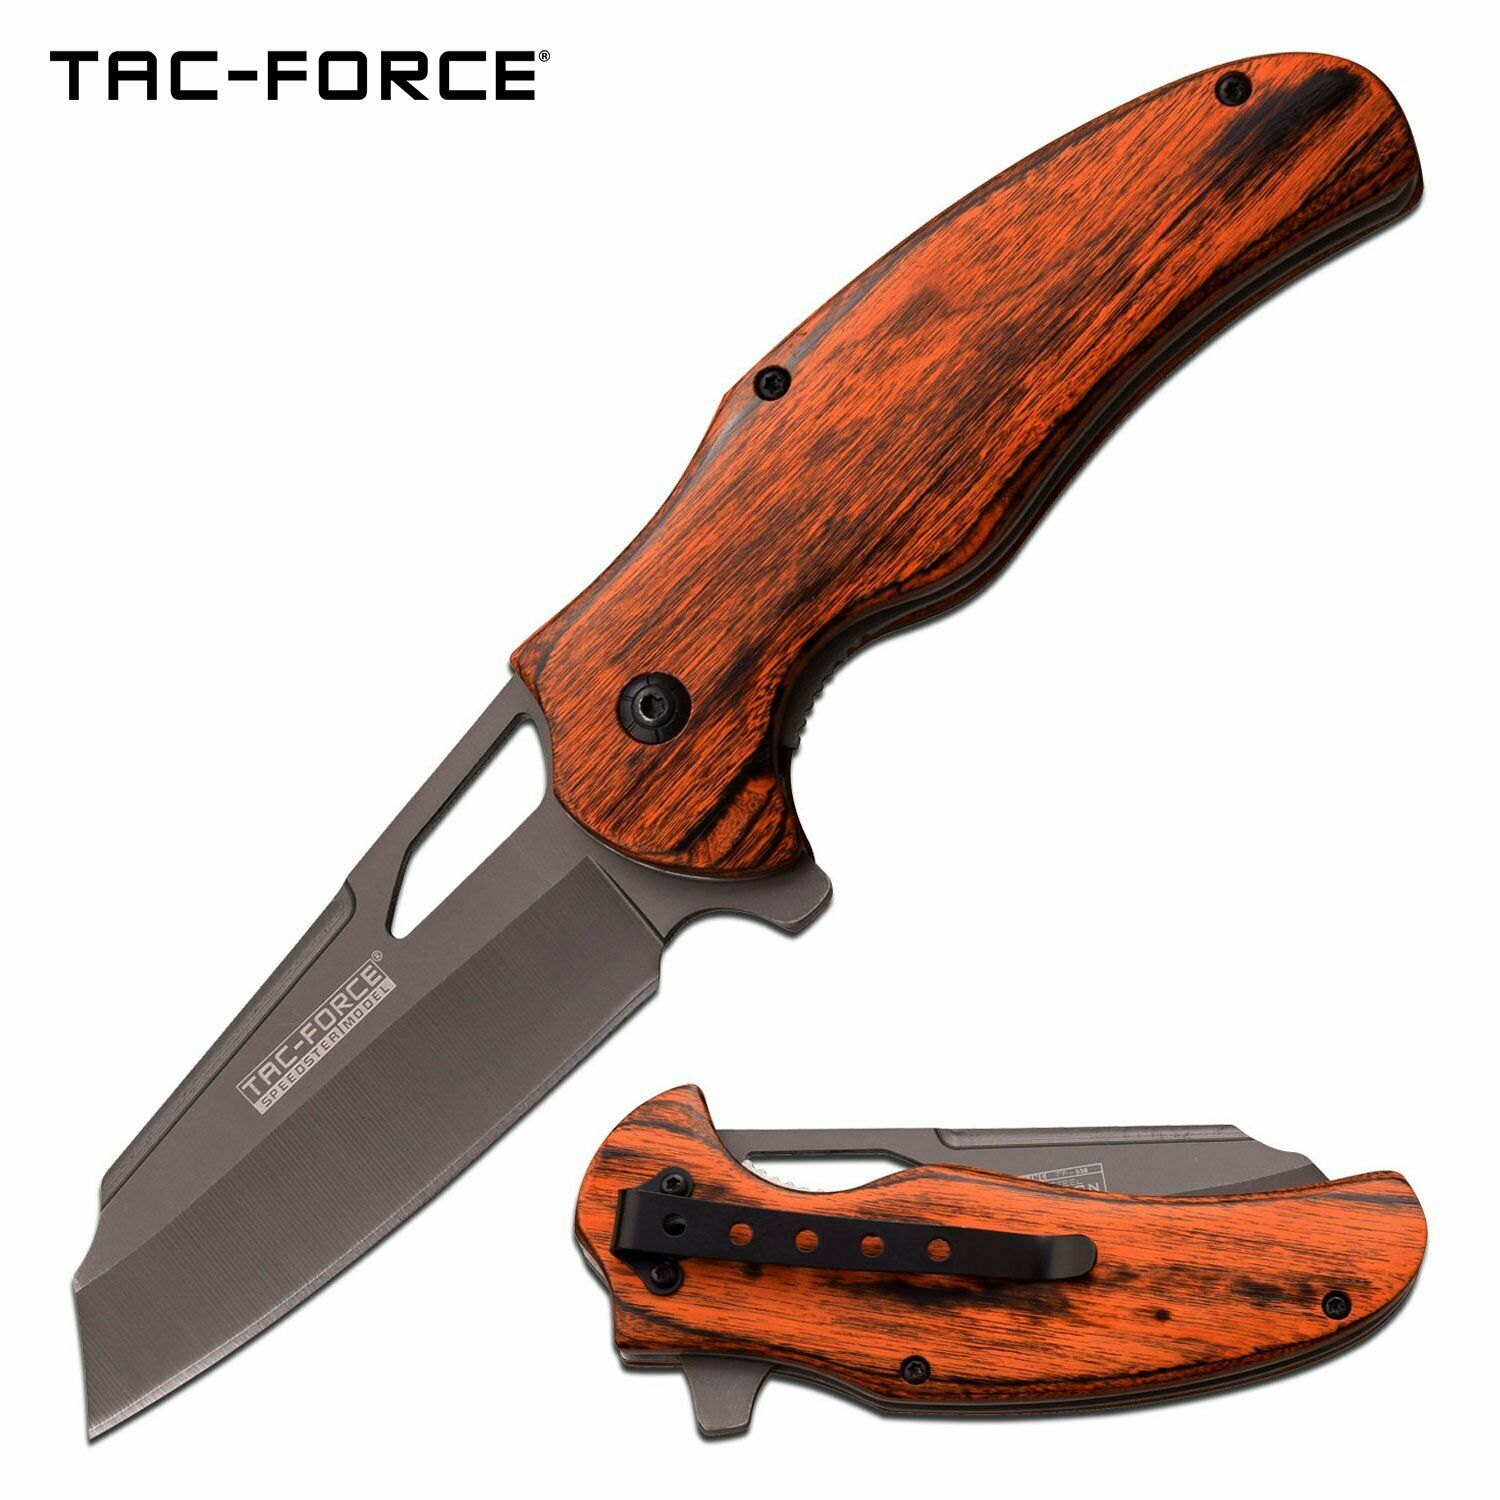 Tac-Force Sheepsfoot Pocket Knife Spring Assist Flipper Wood Handle Gray Ti Cleaver Blade